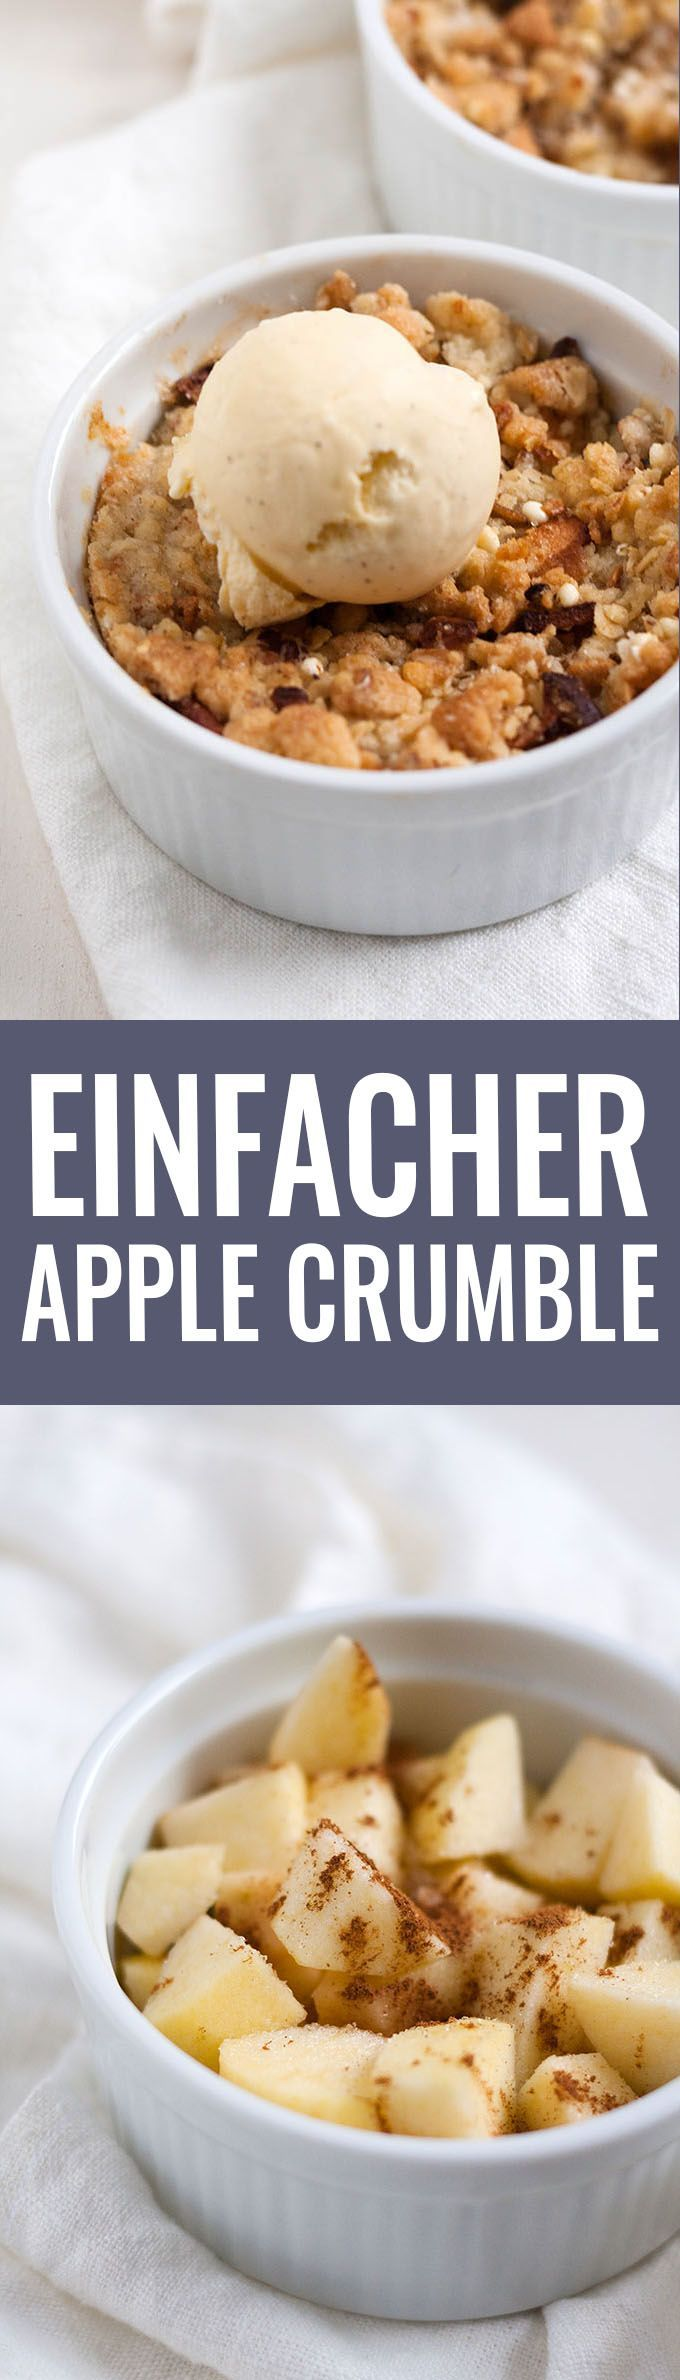 Einfacher Apple Crumble #applerecipes